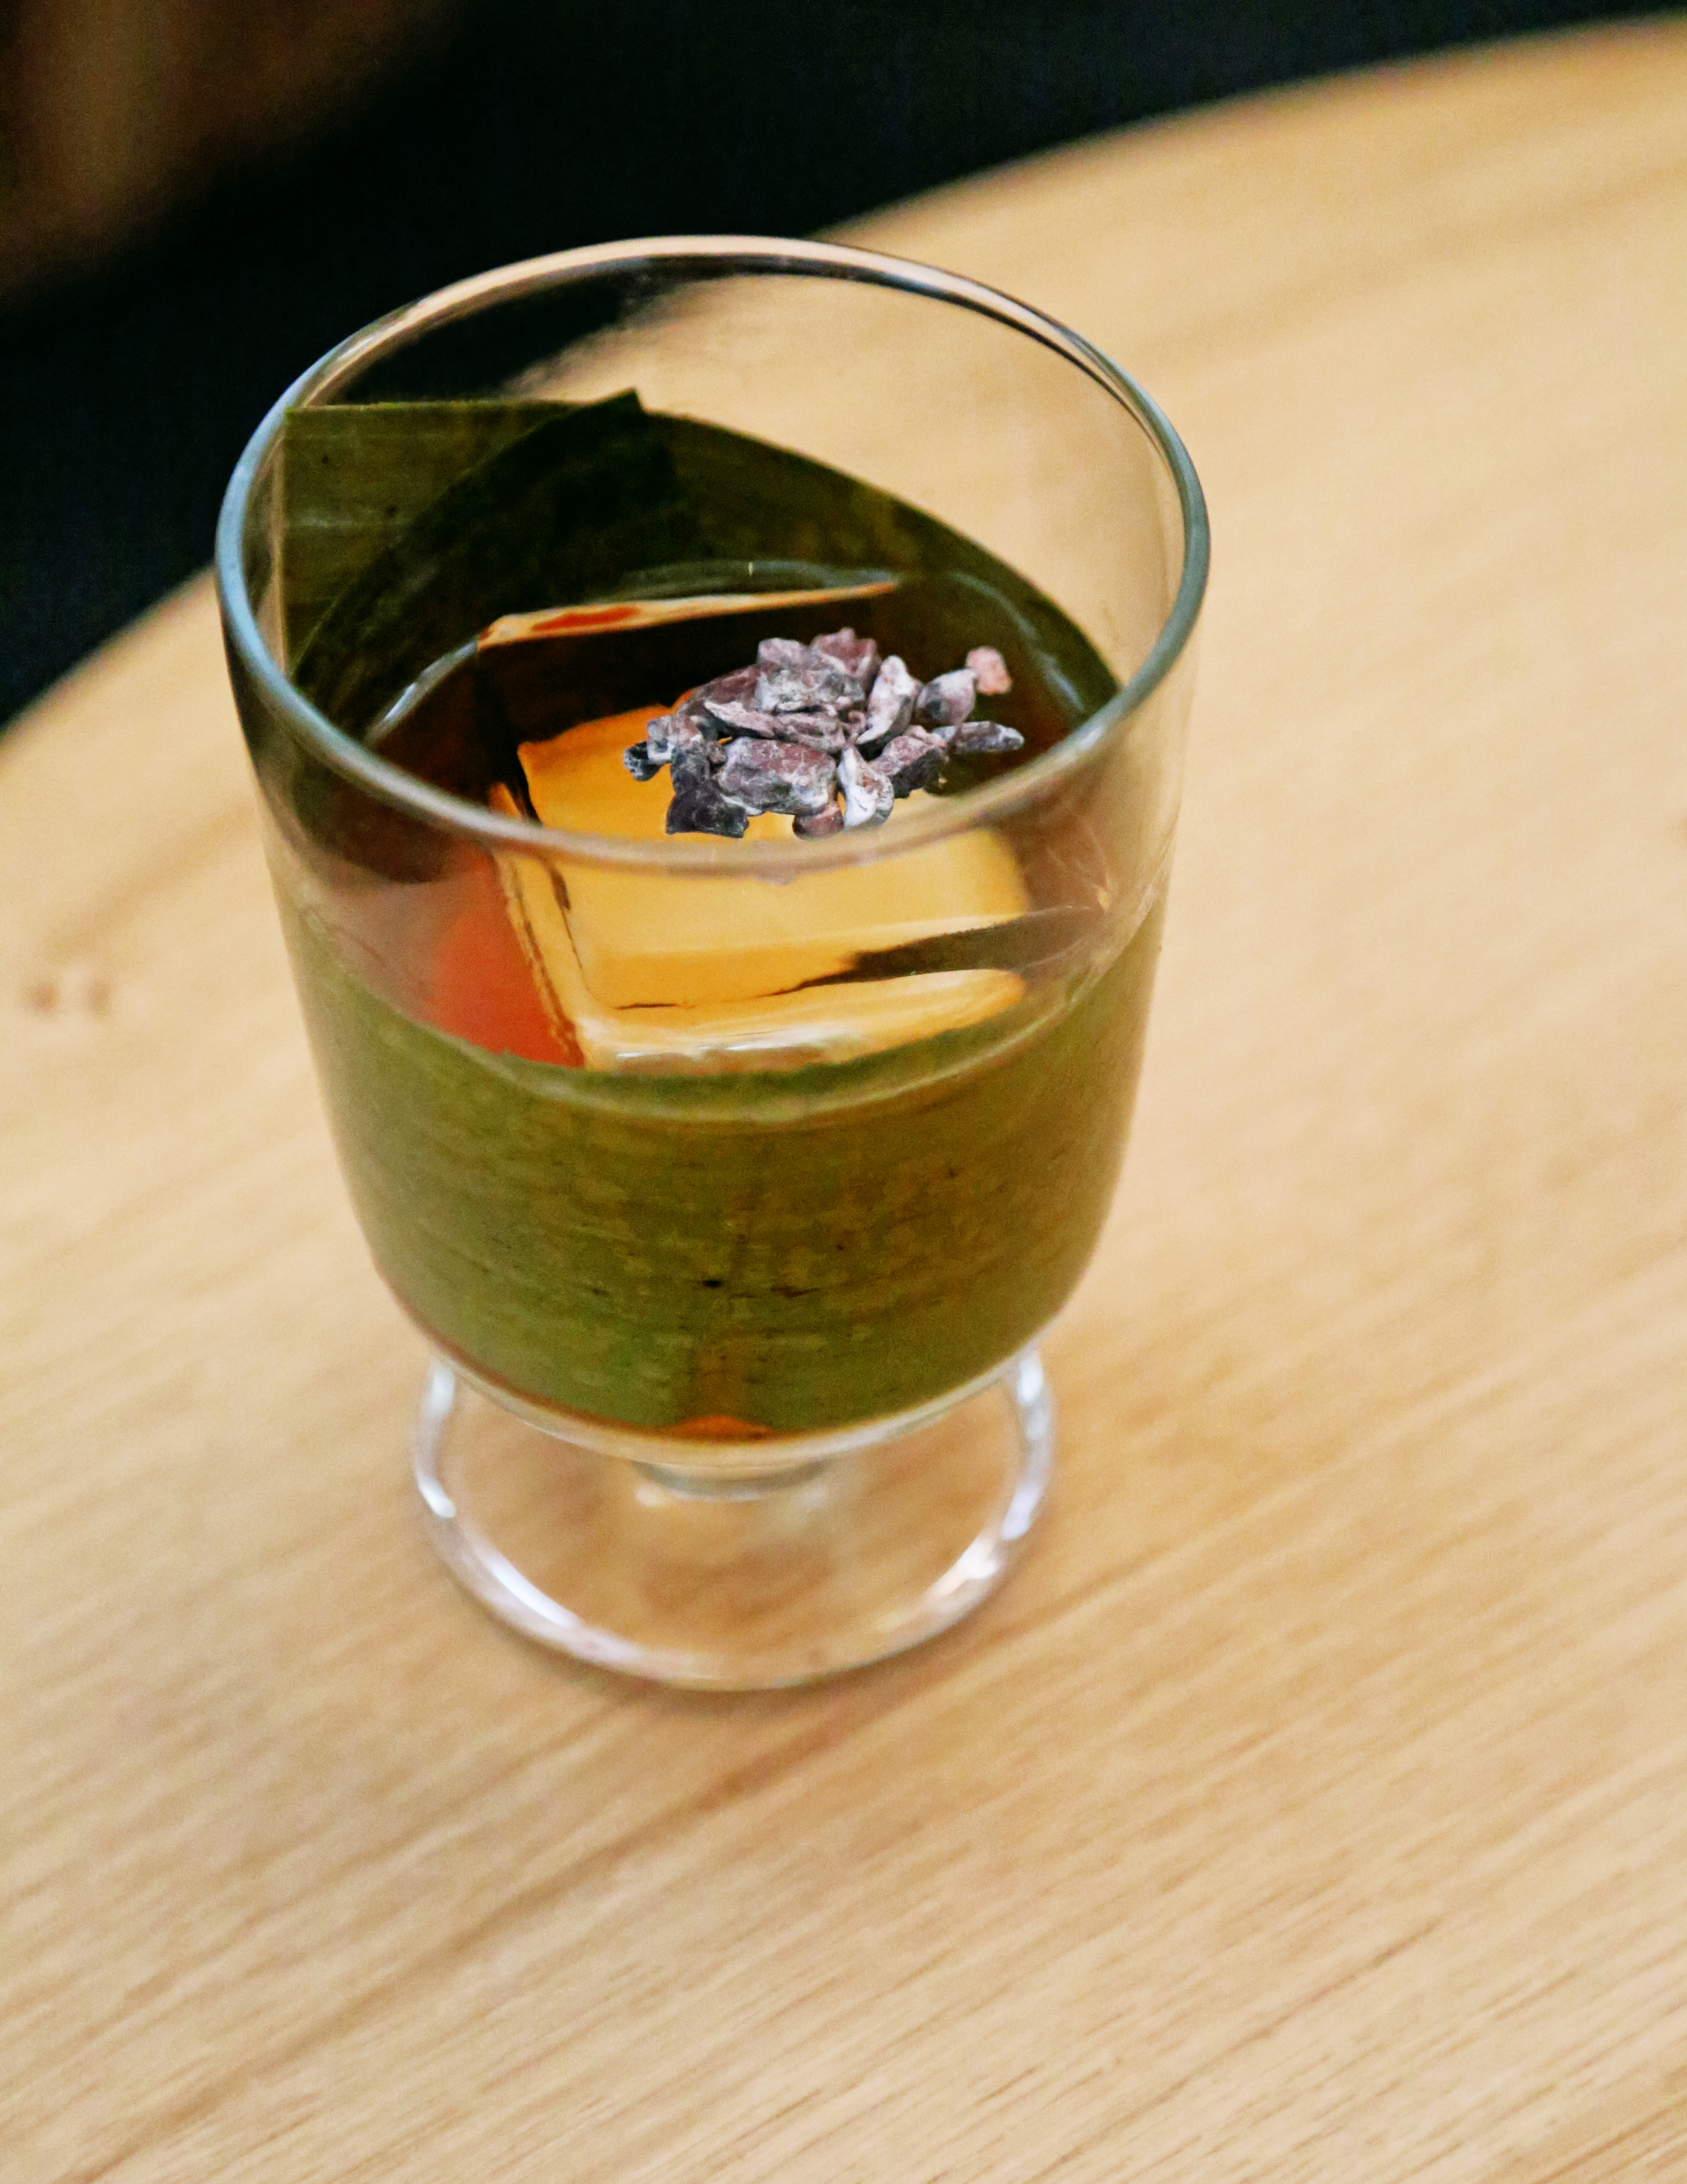 A cocktail wrapped in a banana leaf from Traveler bar